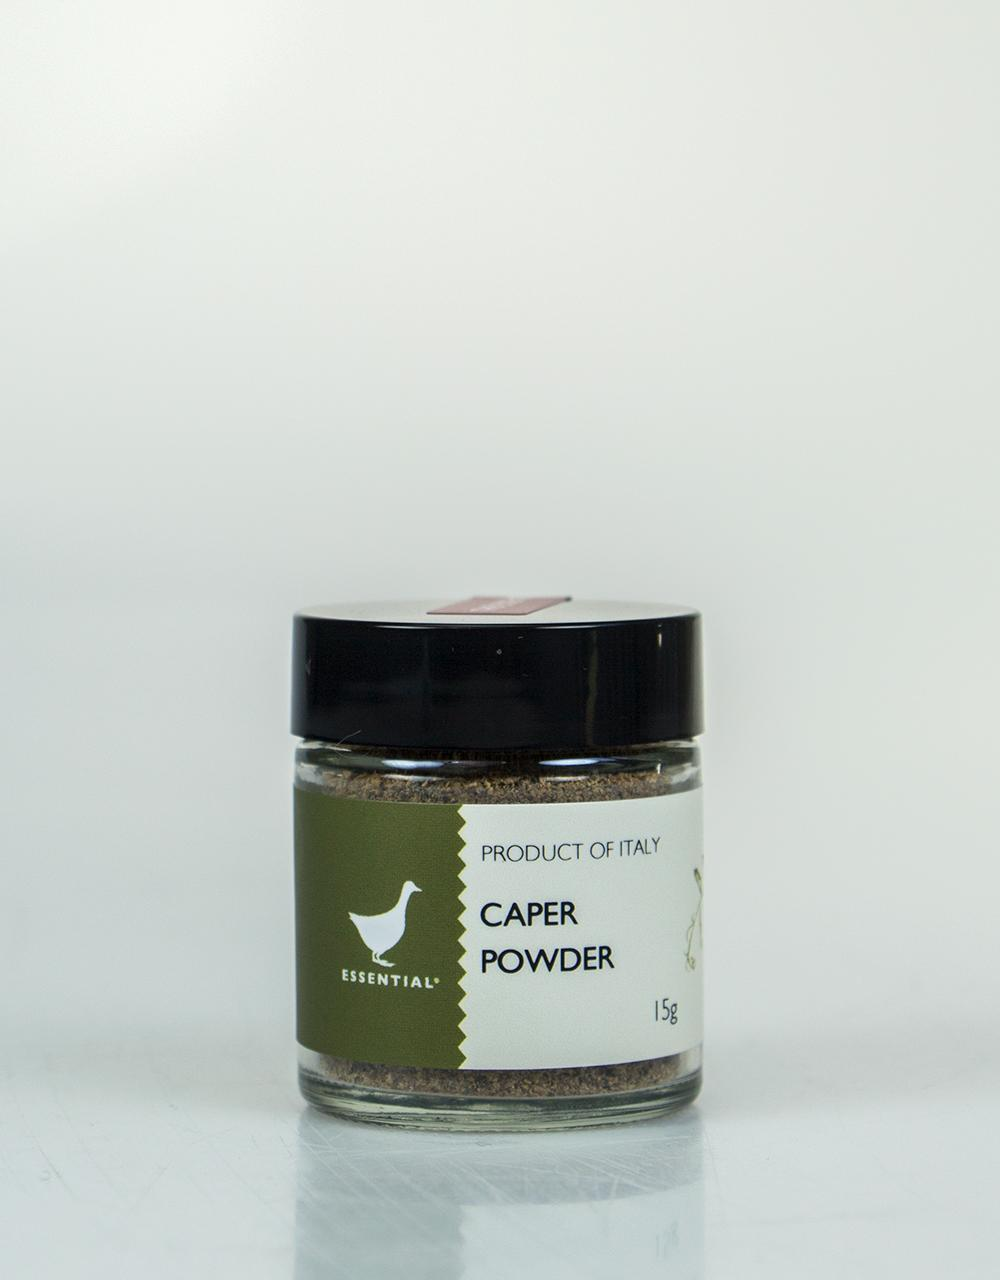 The Essential Ingredient Caper Powder 15g